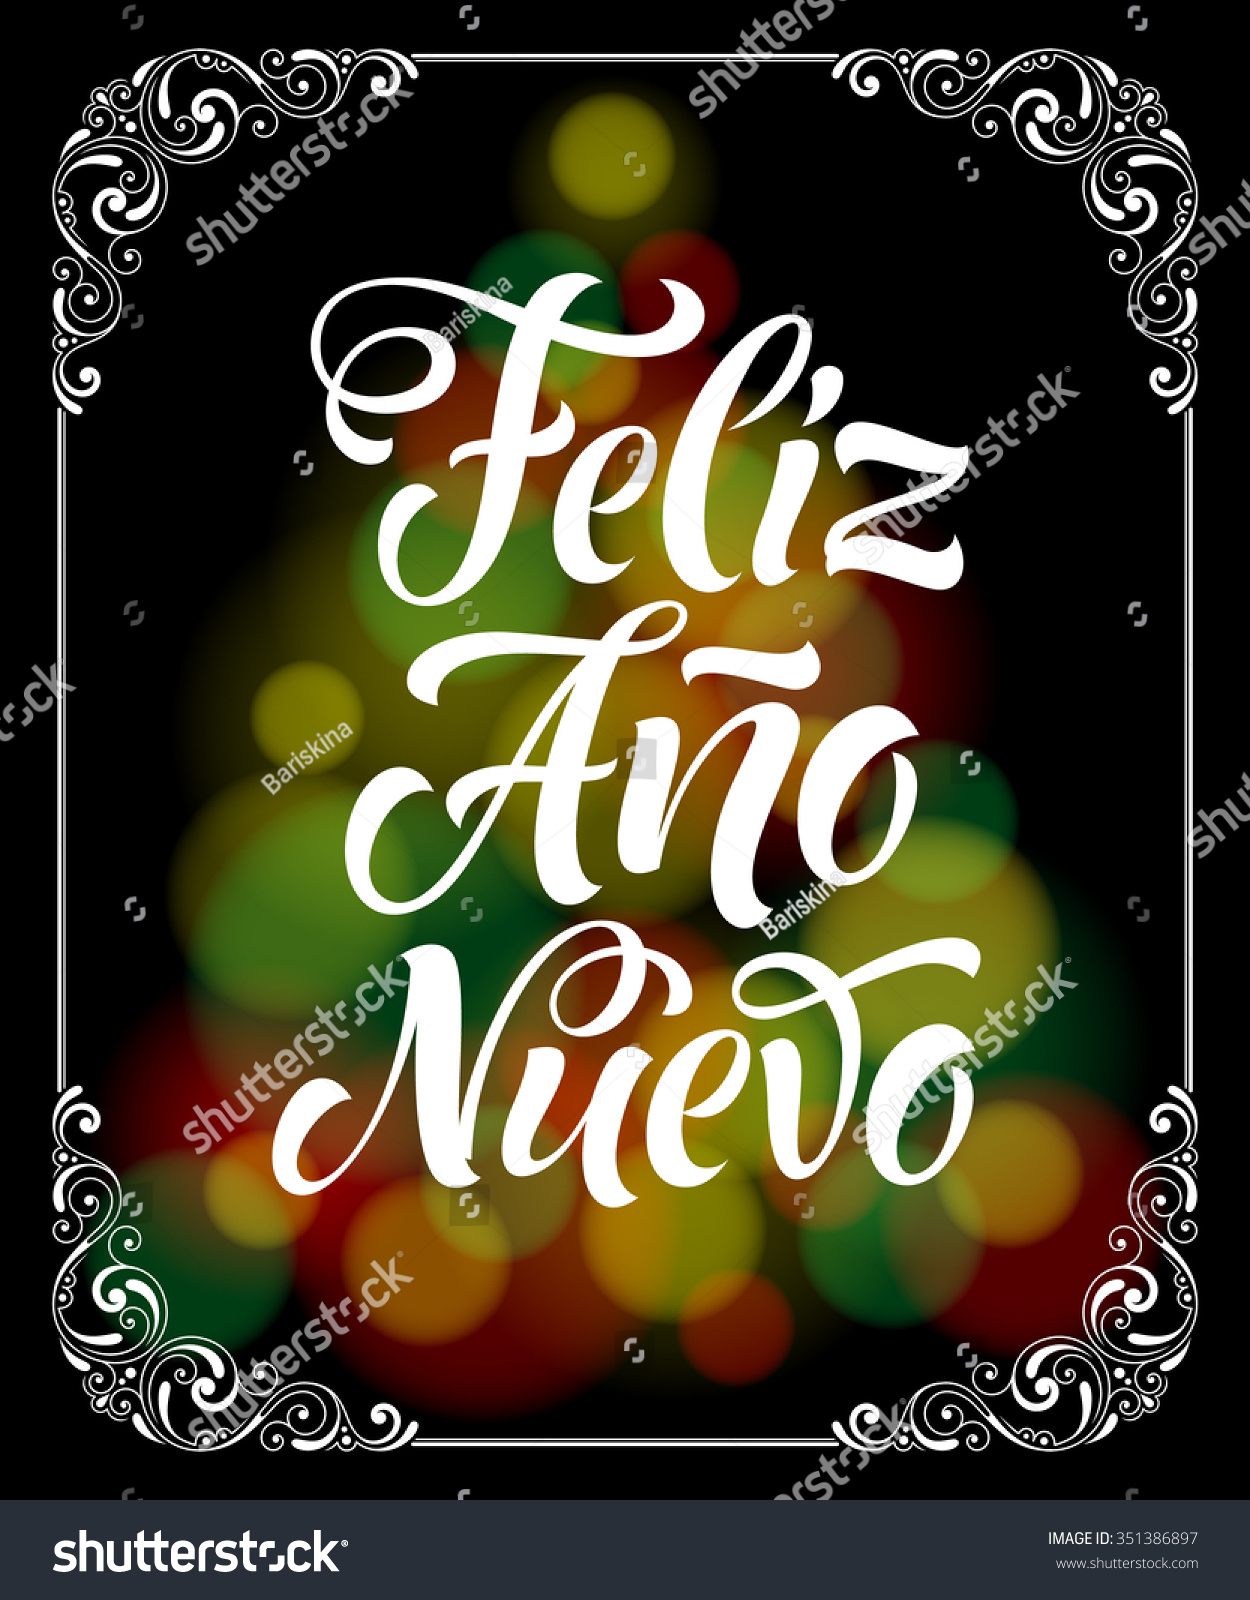 happy new year in spanish feliz ano nuevo vector lettering for invitation greeting